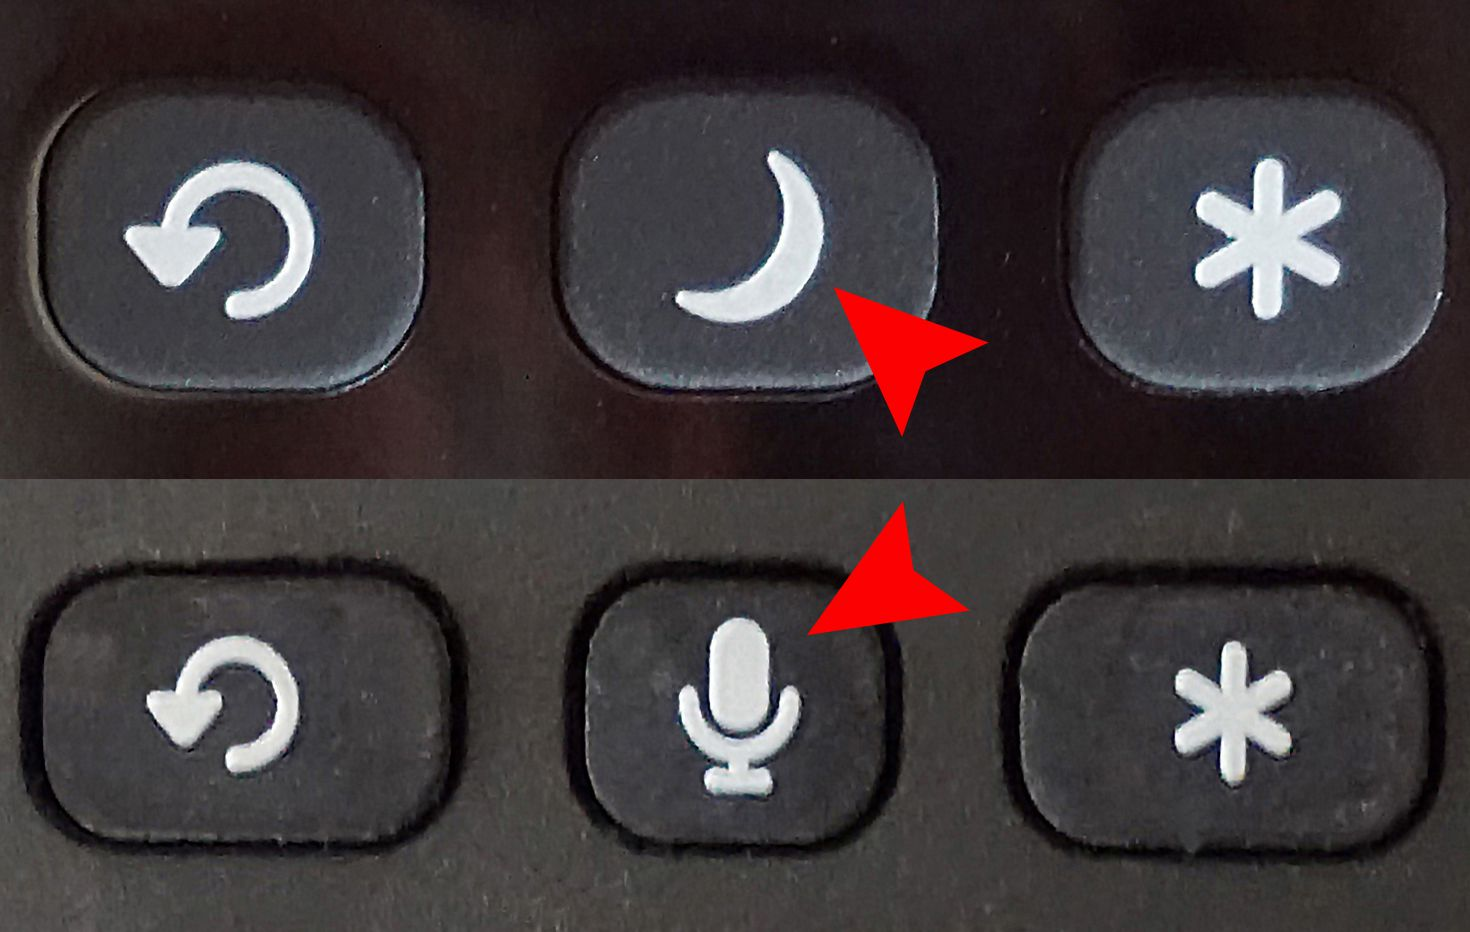 Roku TV Remote Comparison — Sleep Timer vs Microphone Buttons